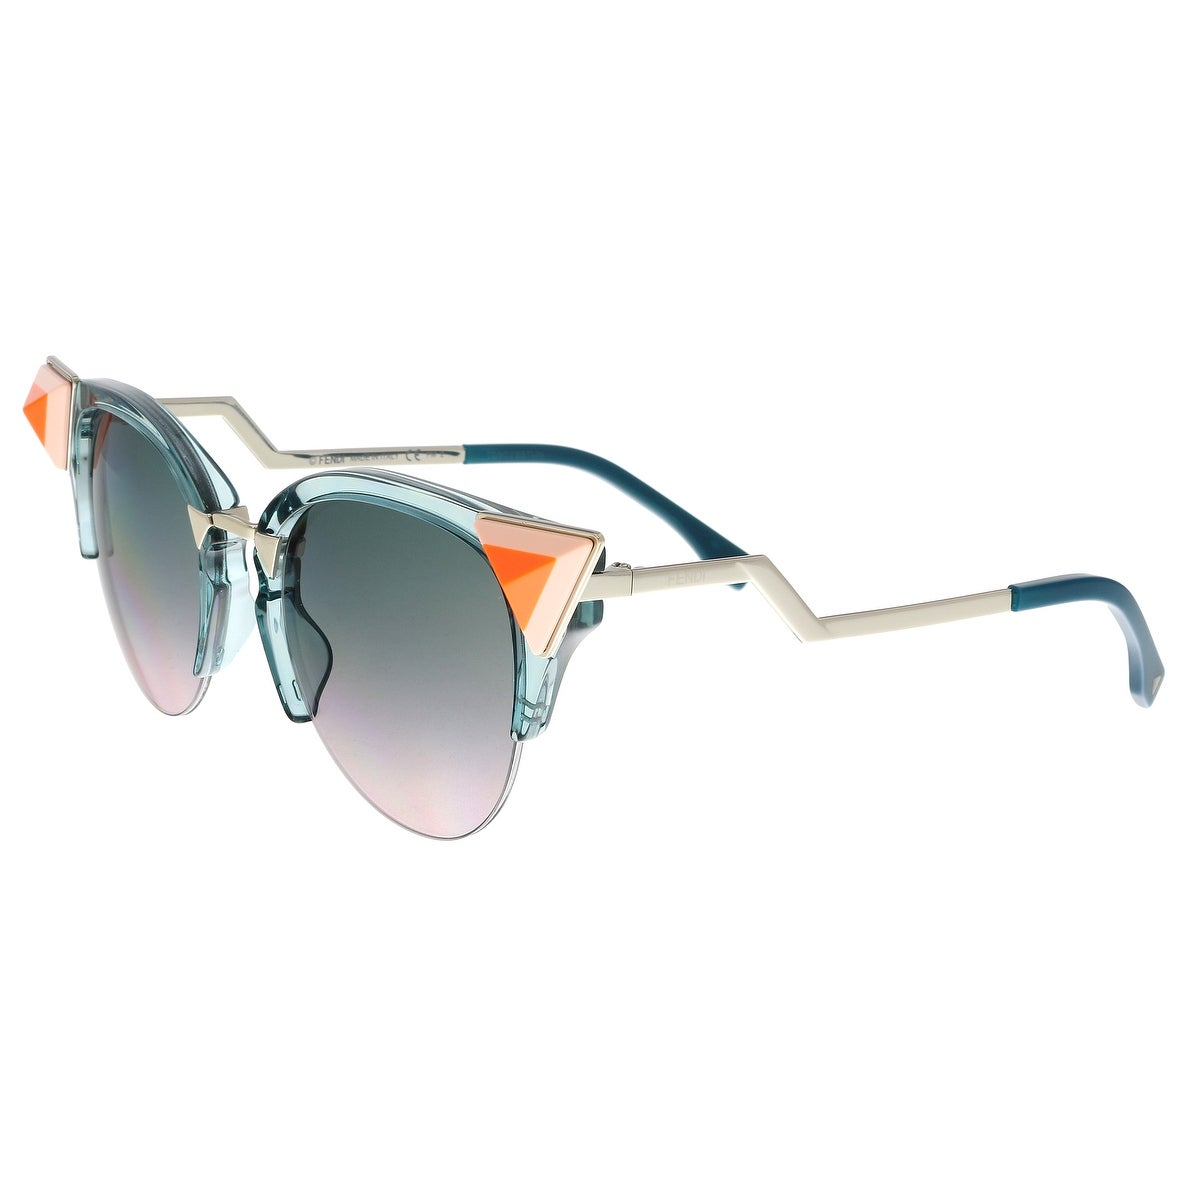 a703d701155 Fendi Women s Sunglasses